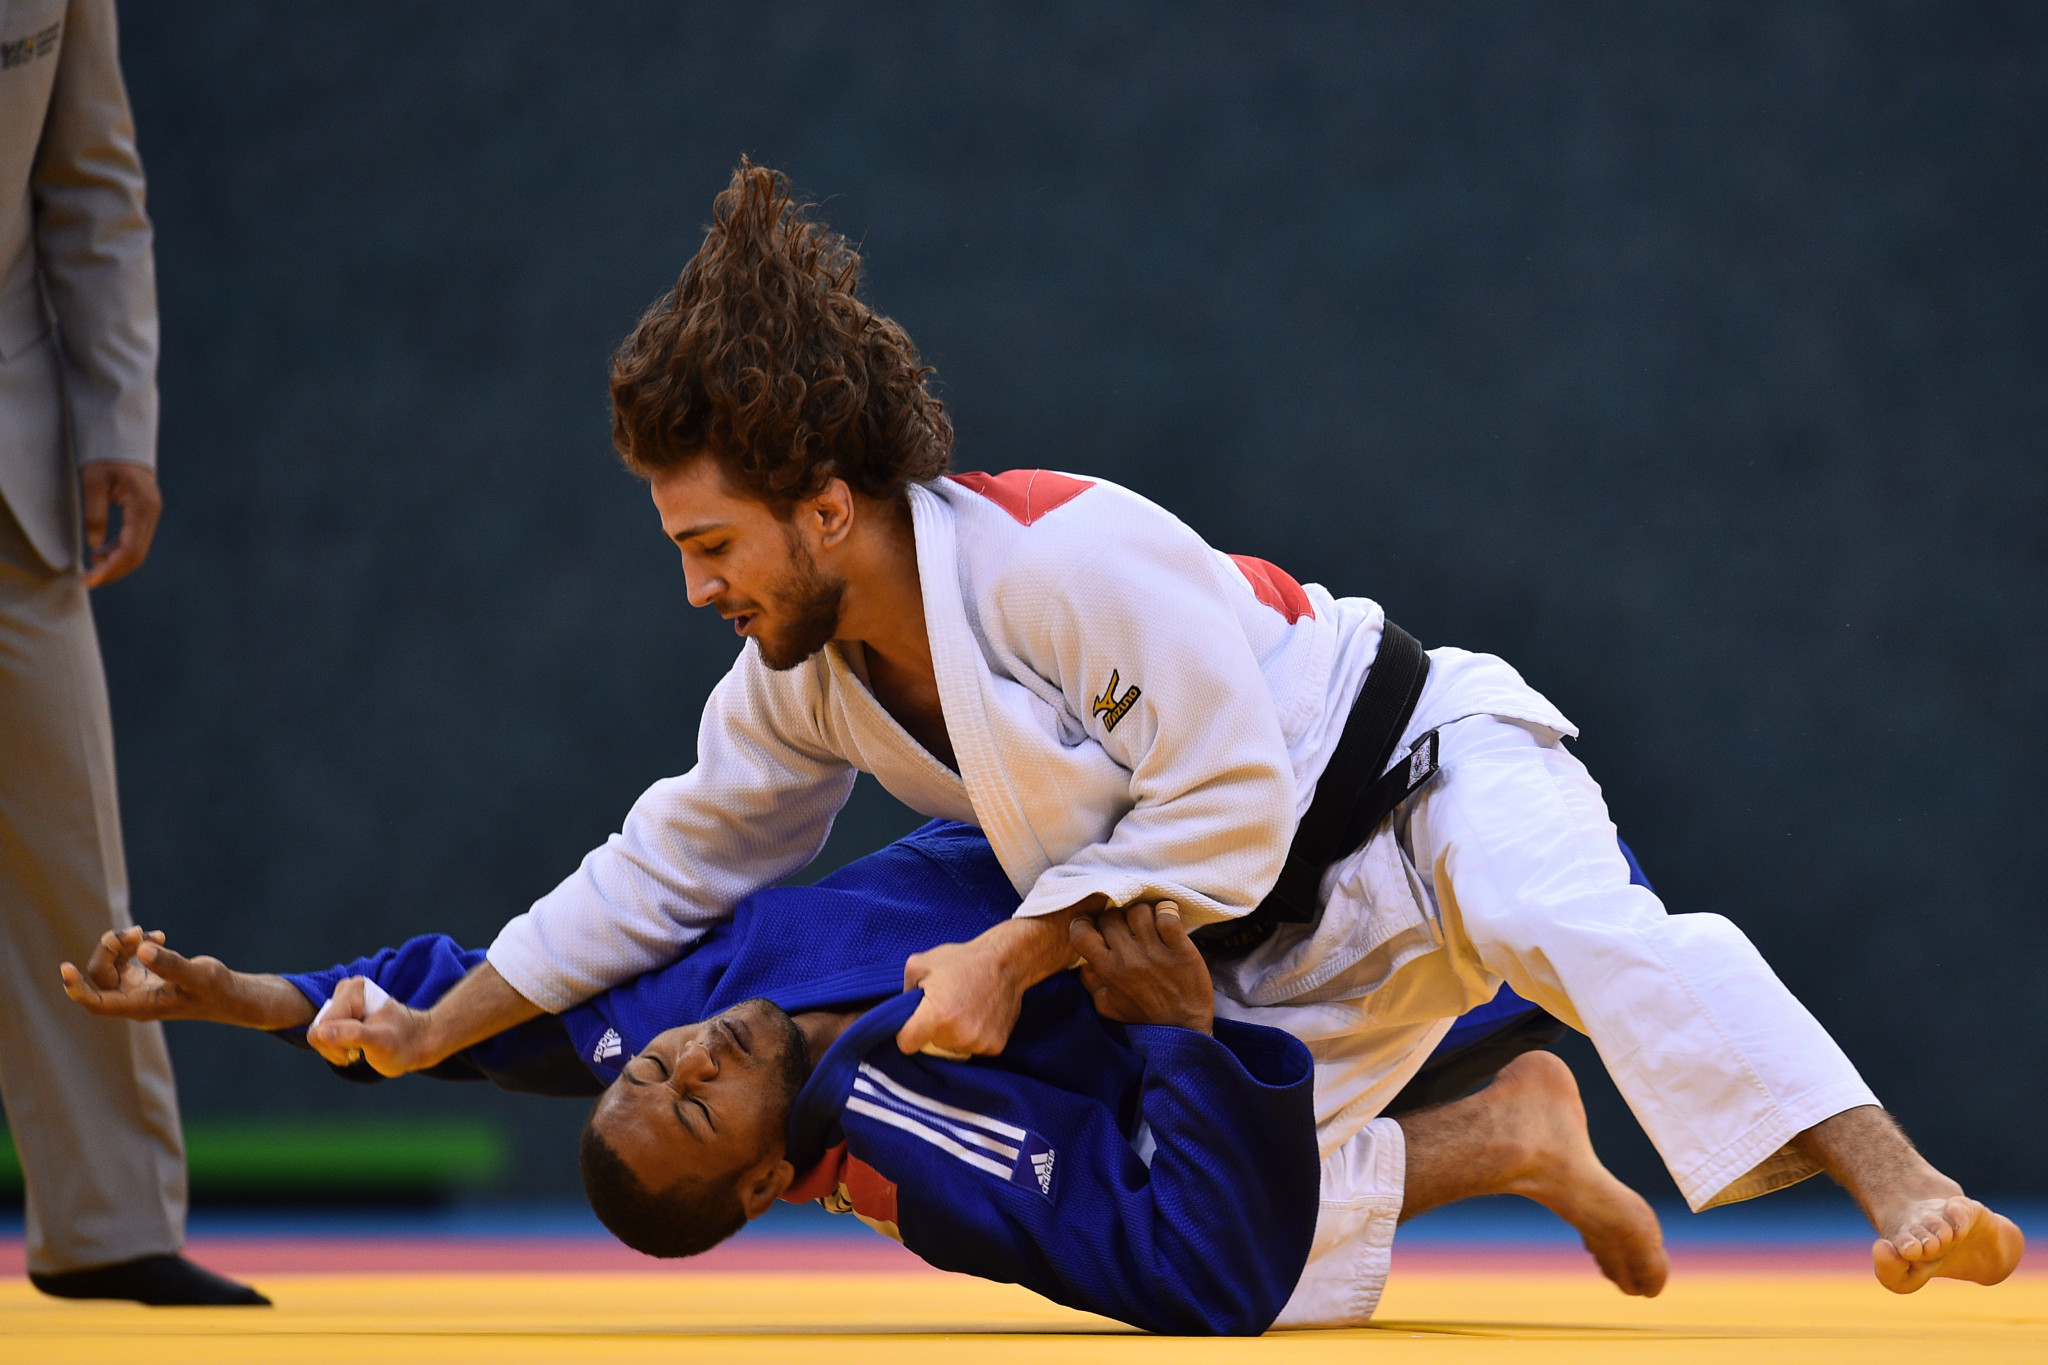 Hidayat Heydarov won gold at the IJF Baku Grand Slam ©Getty Images